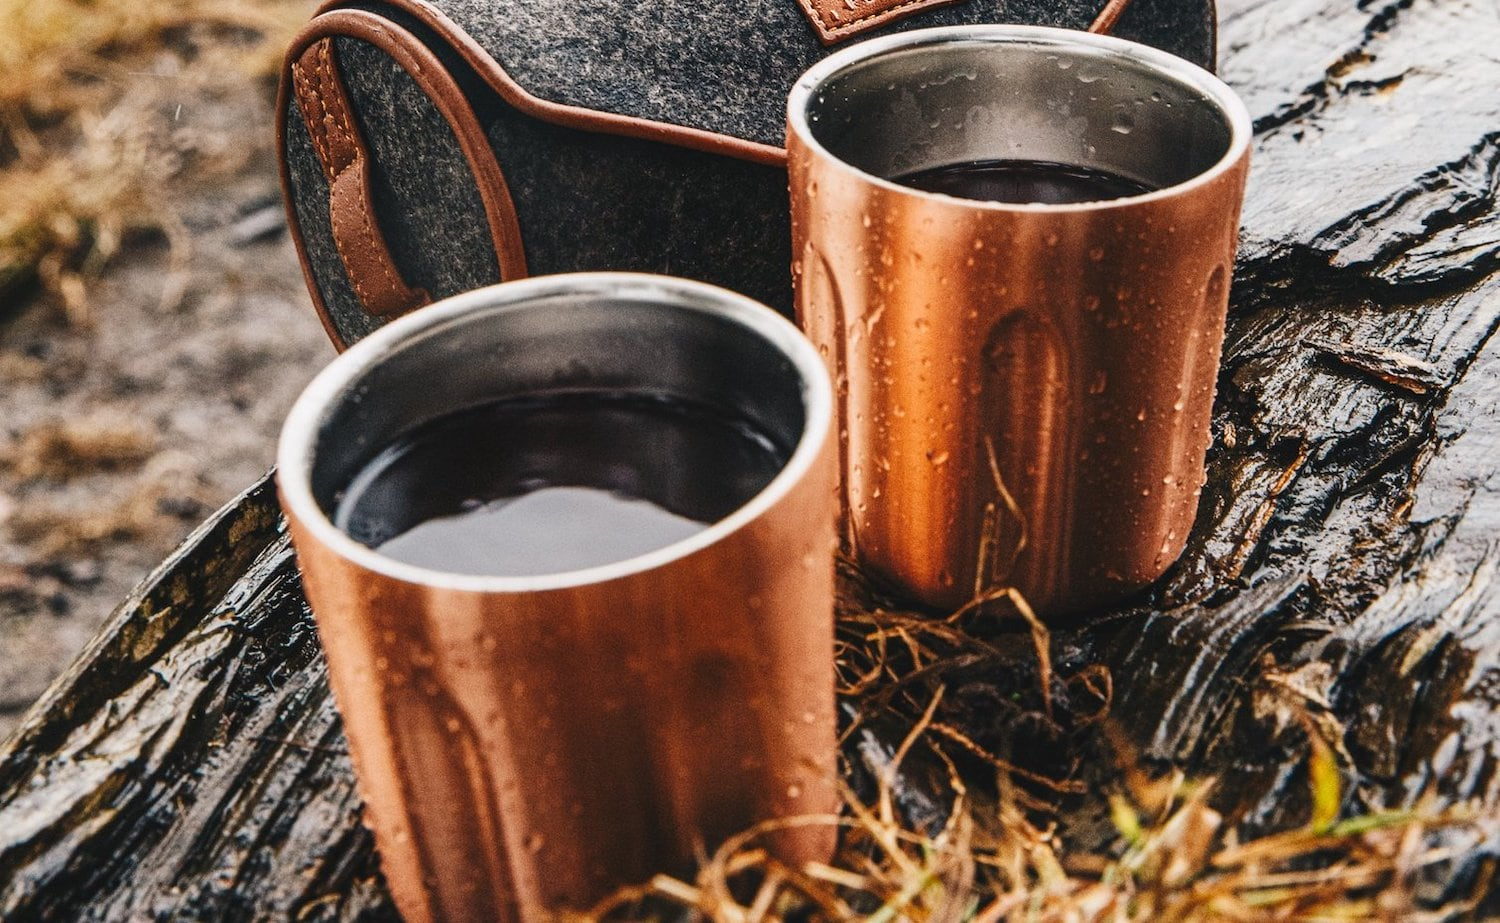 High Camp Firelight Whiskey Tumblers & Felt Case making it easy to enjoy a drink in the wild